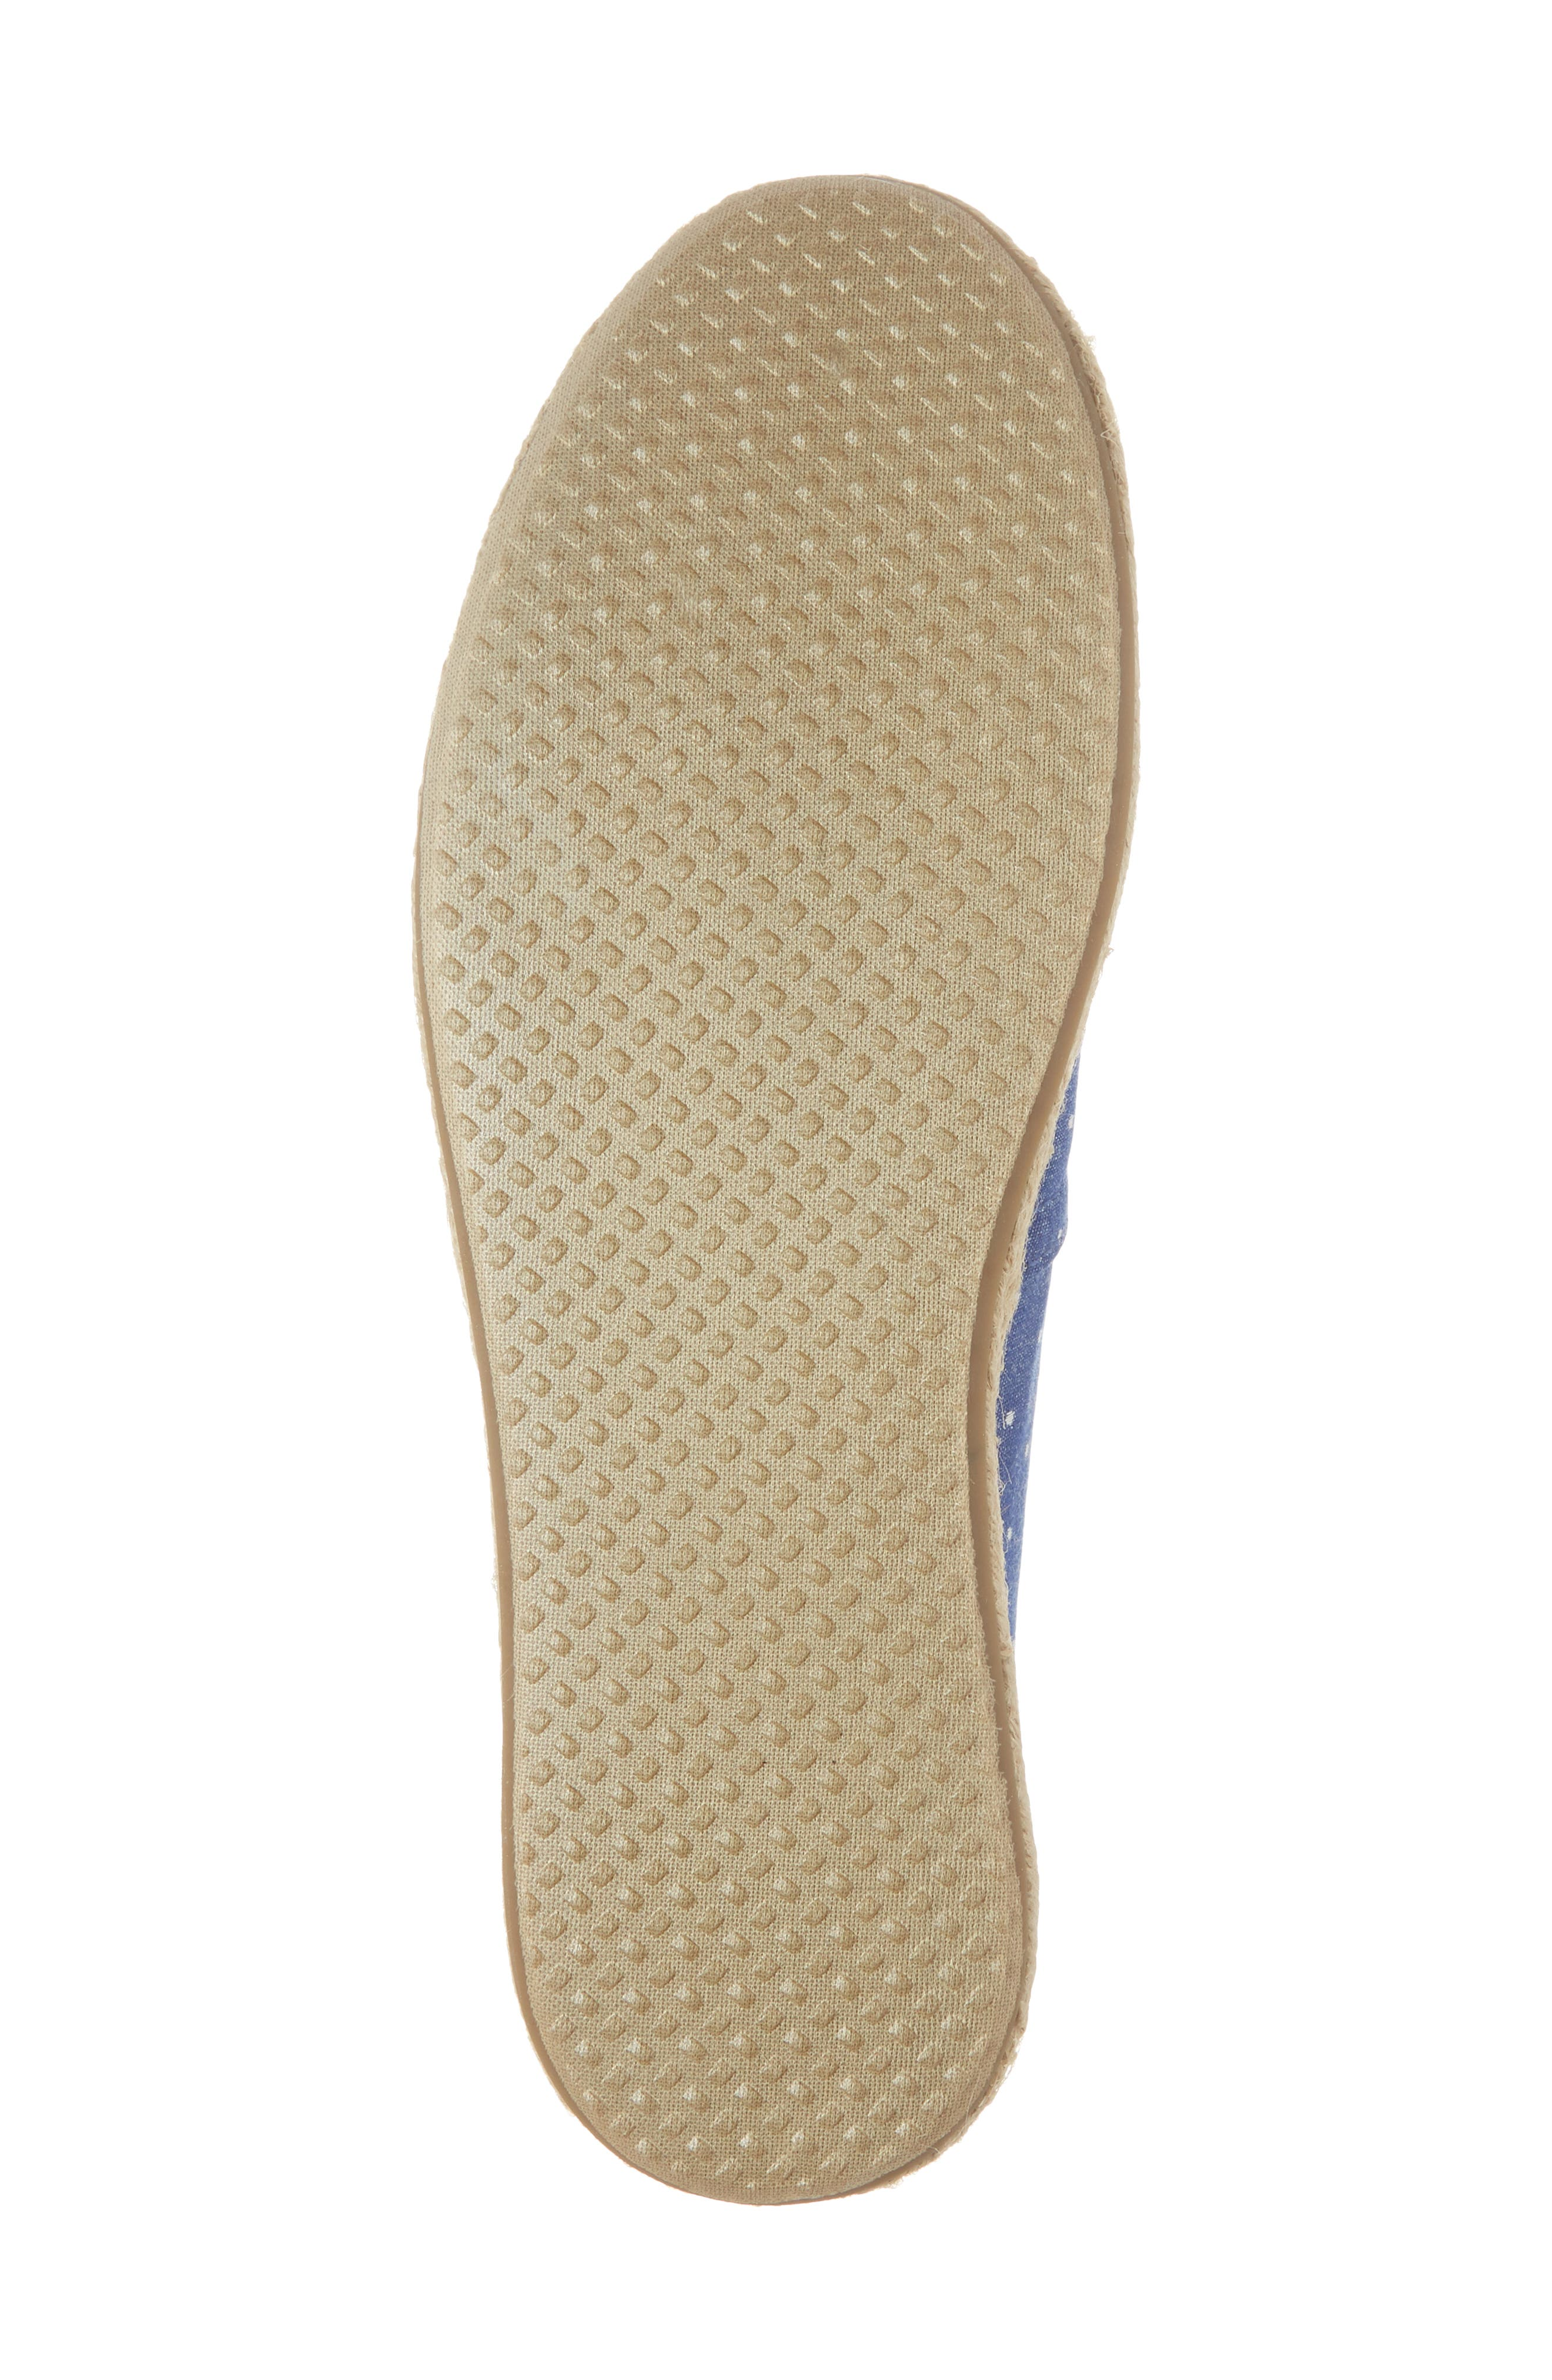 Deconstructed Alpargata Slip-On,                             Alternate thumbnail 6, color,                             Blue Dot Fabric